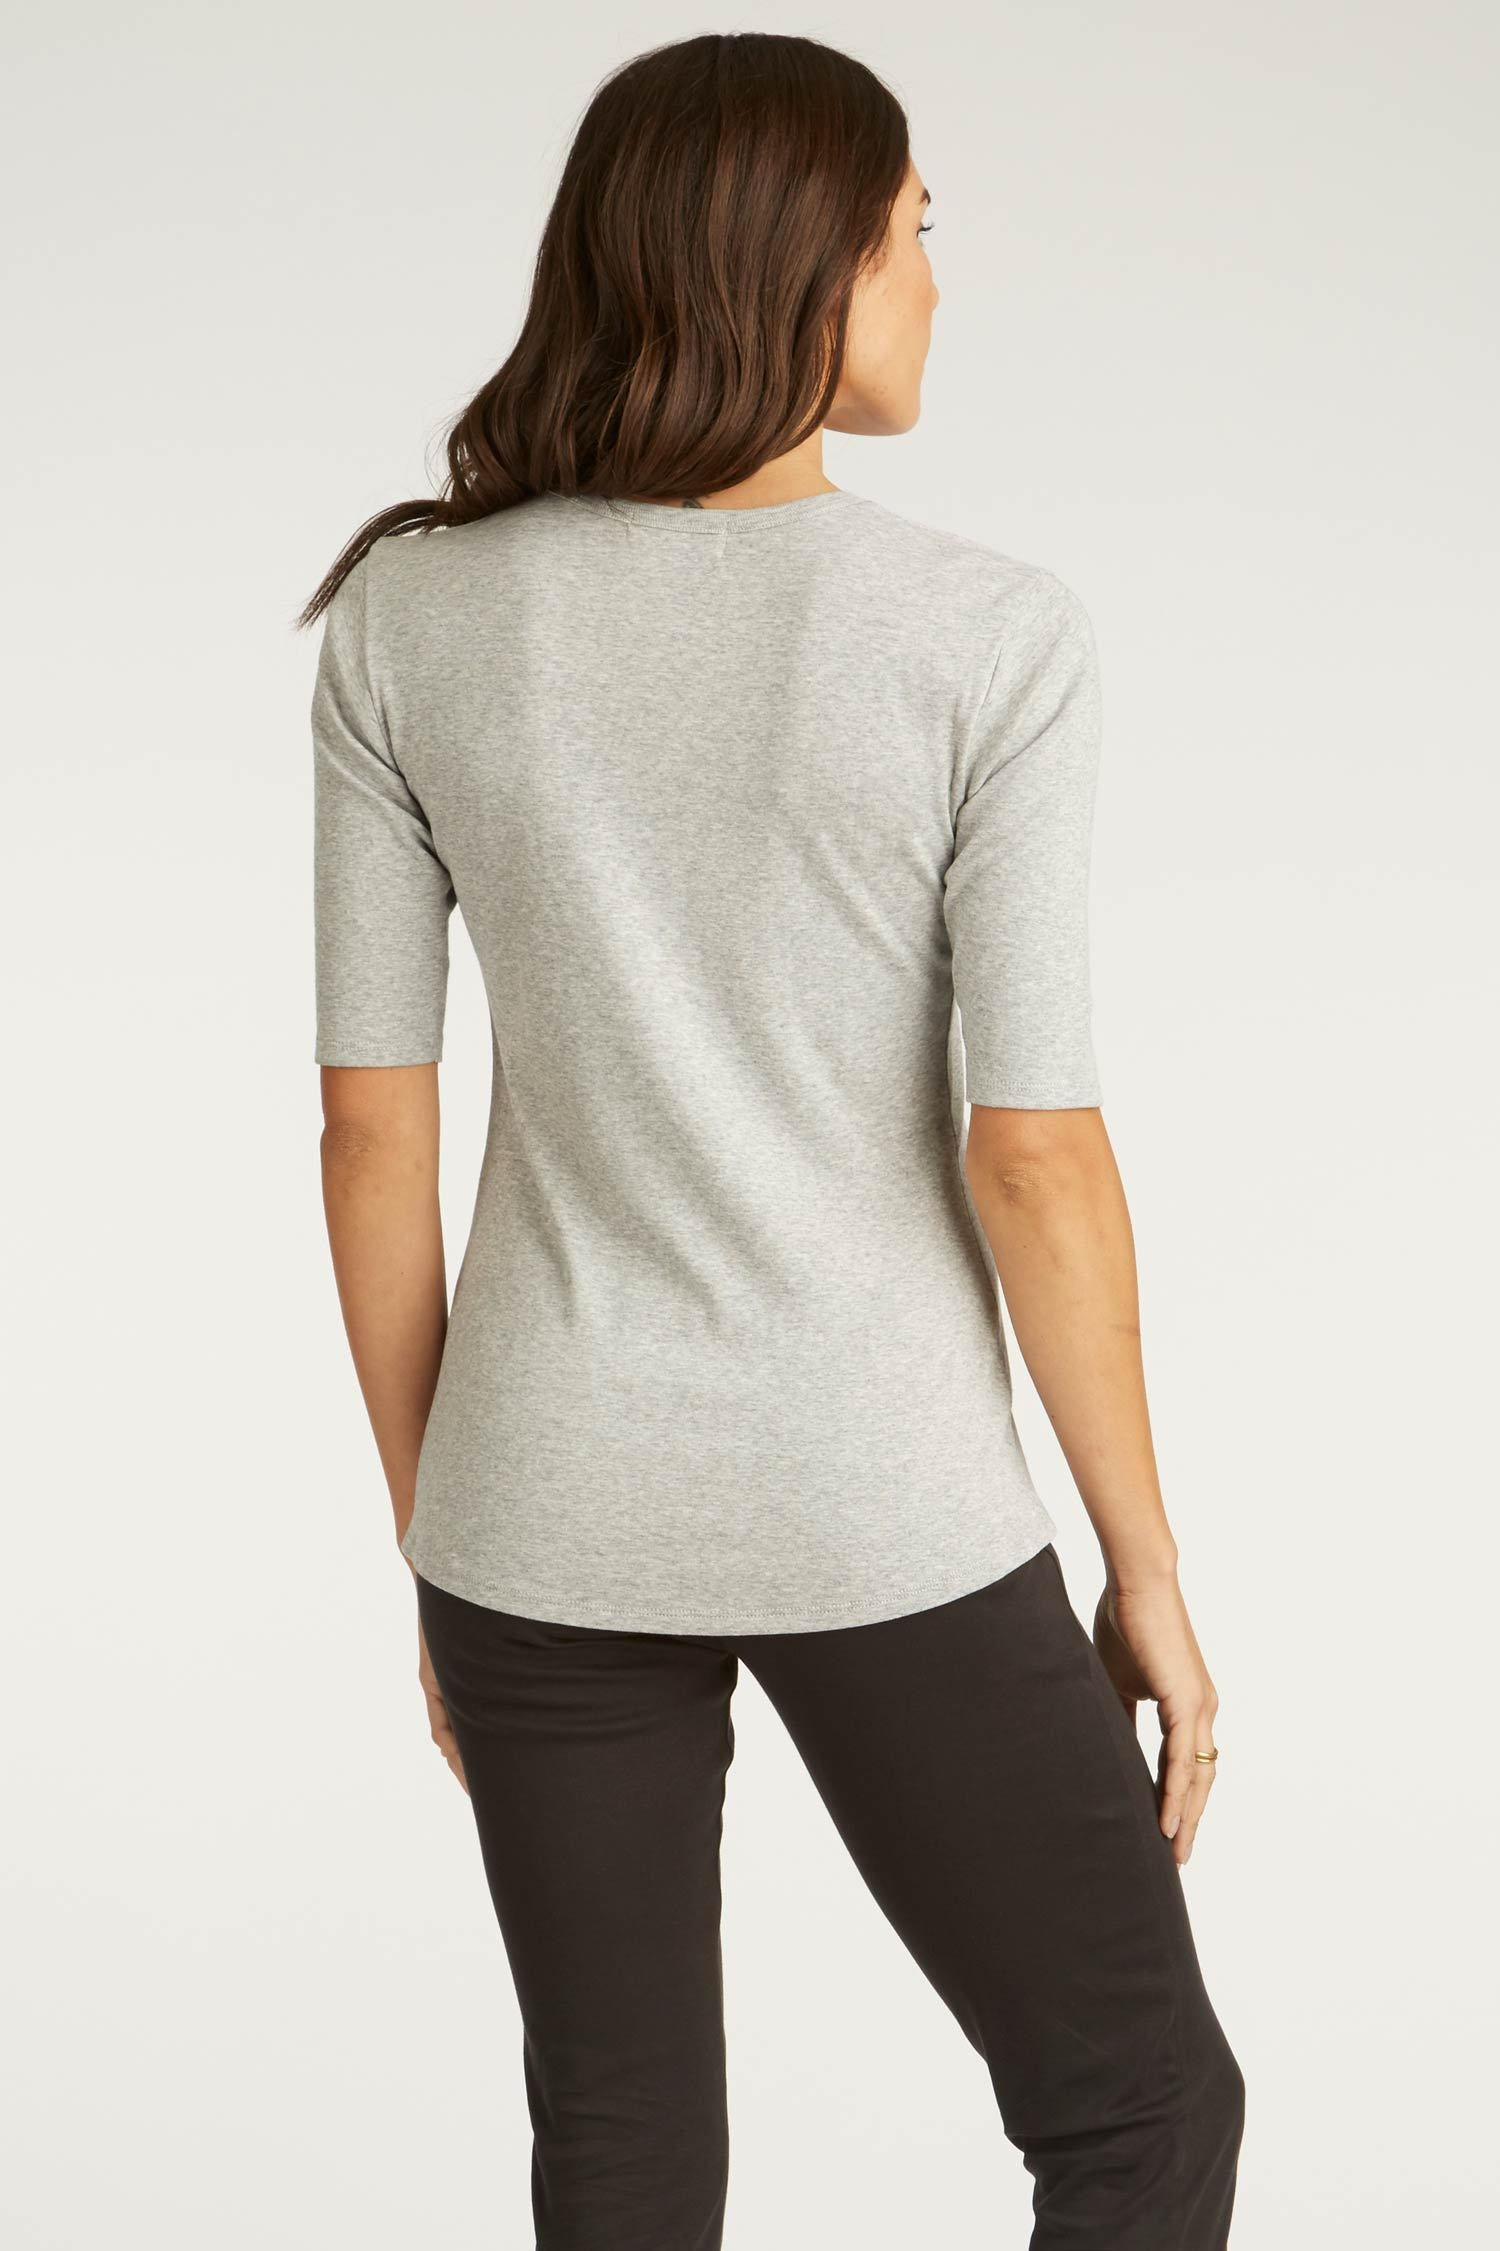 Womens Organic Cotton Top | Gray Scoop Tee | Indigenous